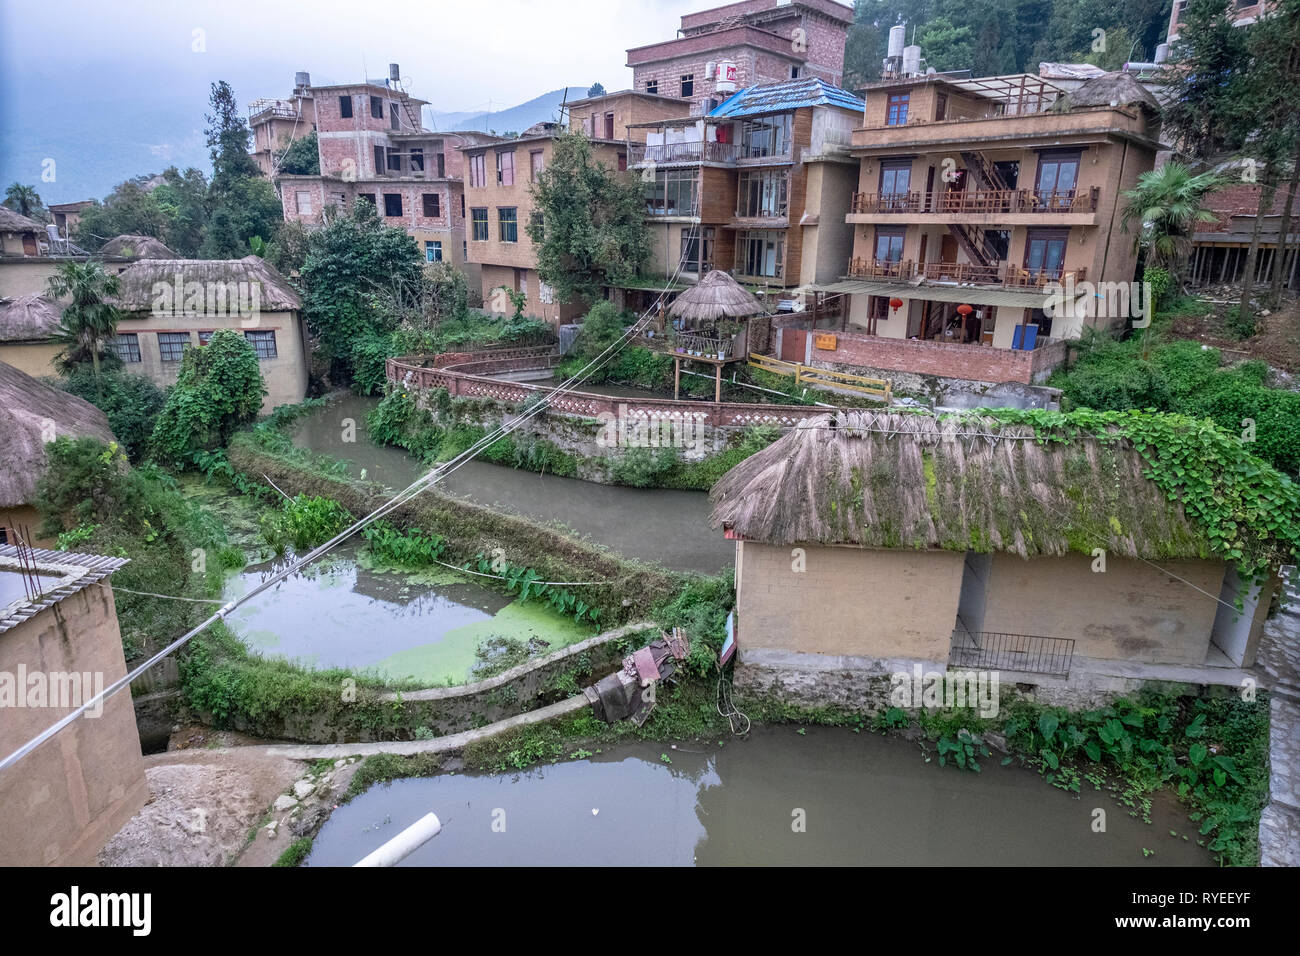 Hani Minority village, Yuanyang County, in Honghe Prefecture in southeastern Yunnan province, China, - Stock Image